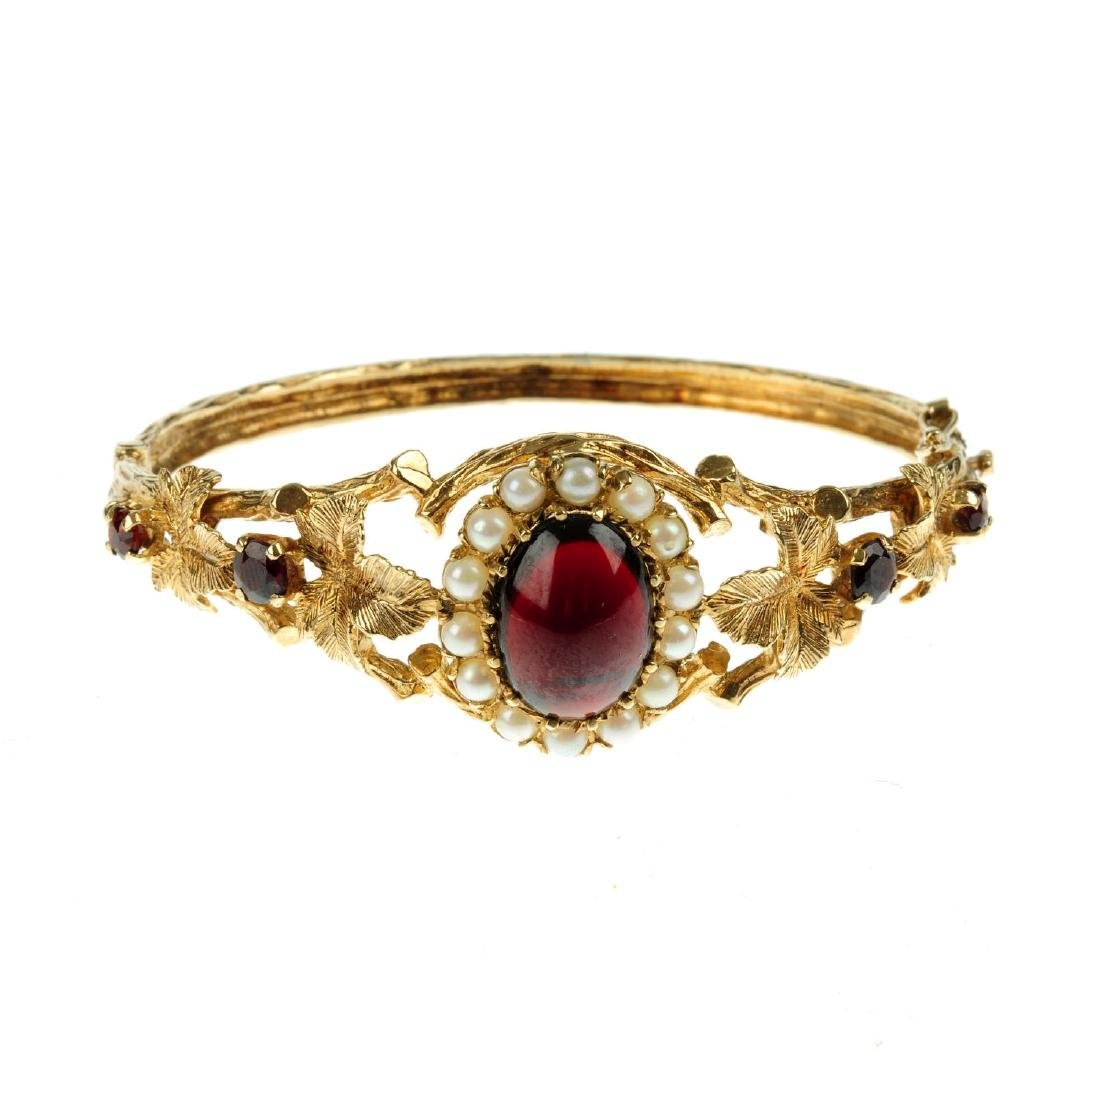 A 9ct gold bangle with red glass cabochon and split